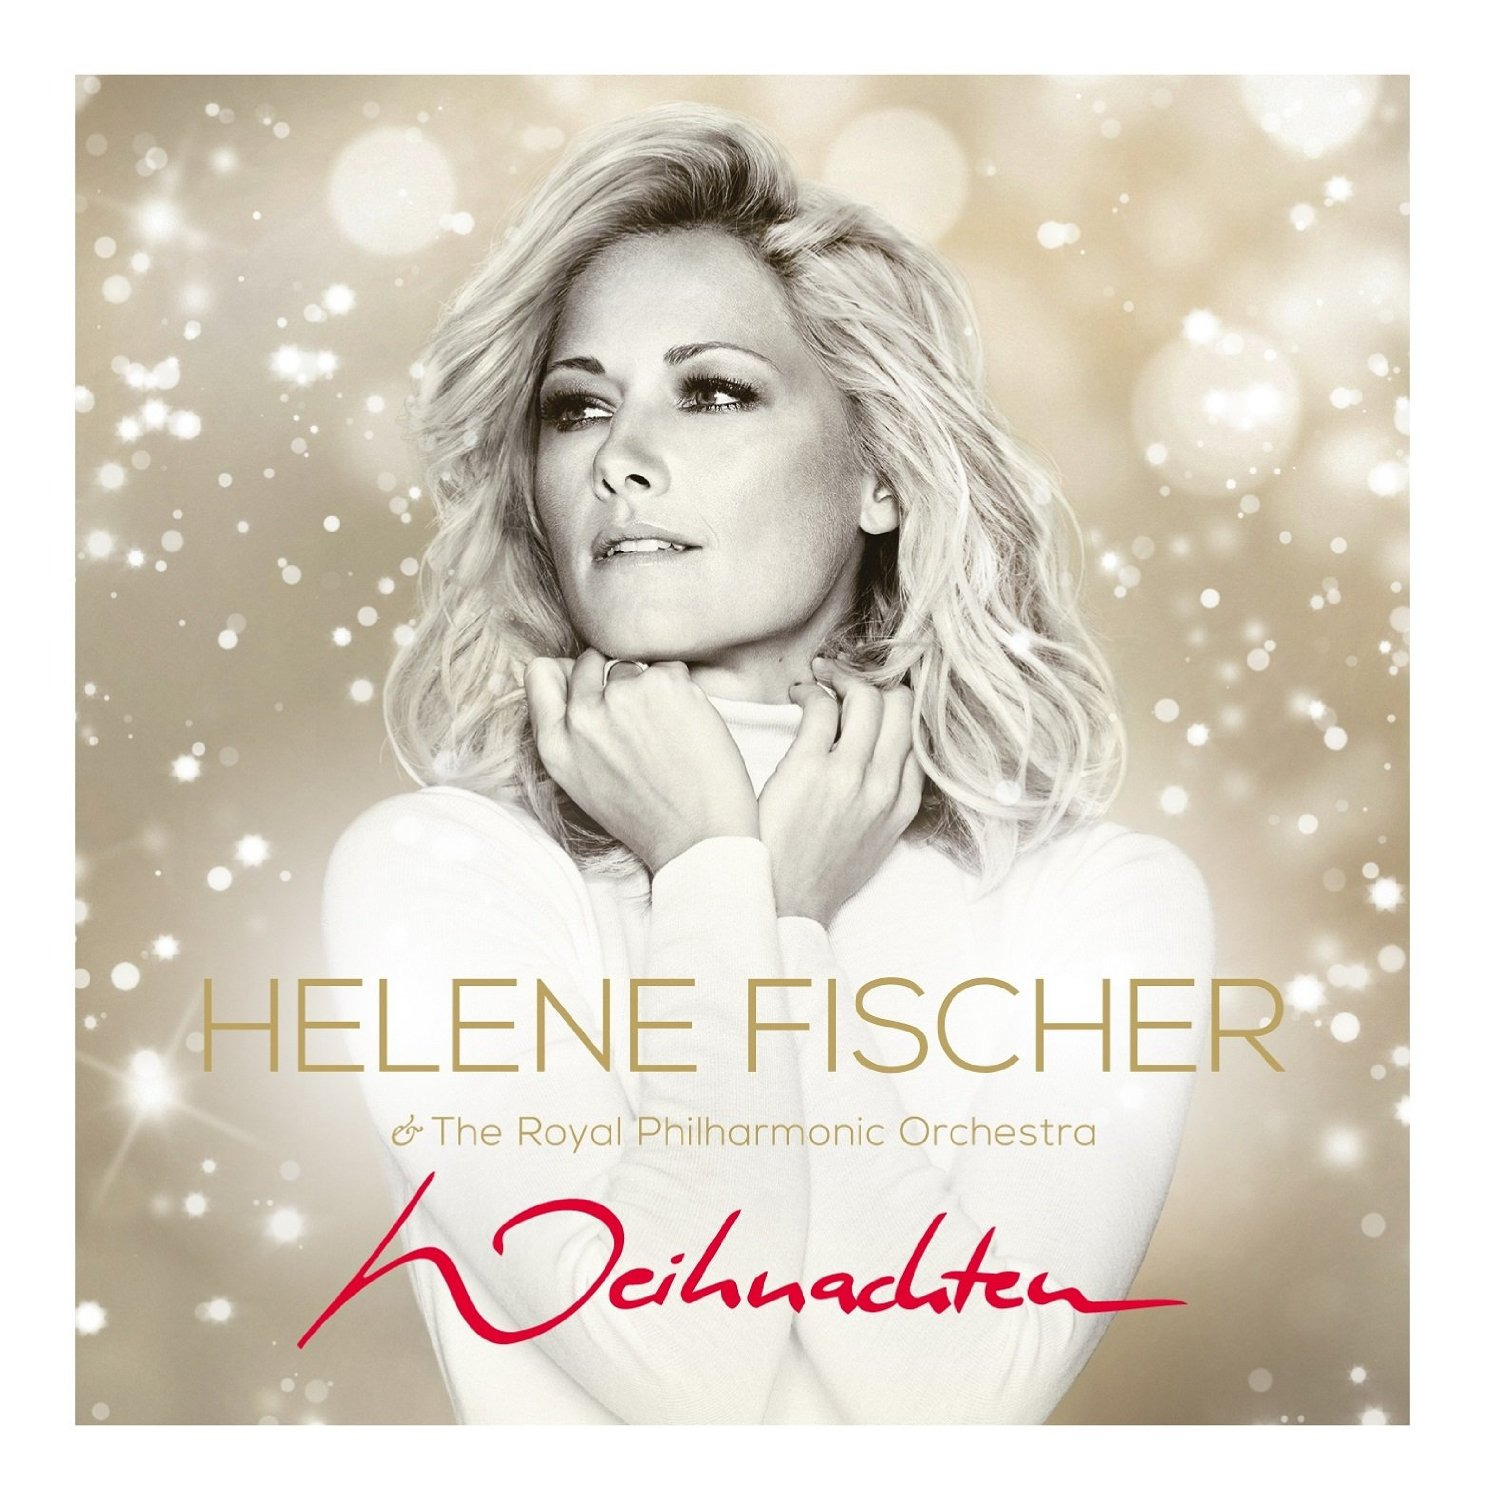 Helene Fischer & The Royal Philharmonic Orchestra: Weihnachten [2 CDs]